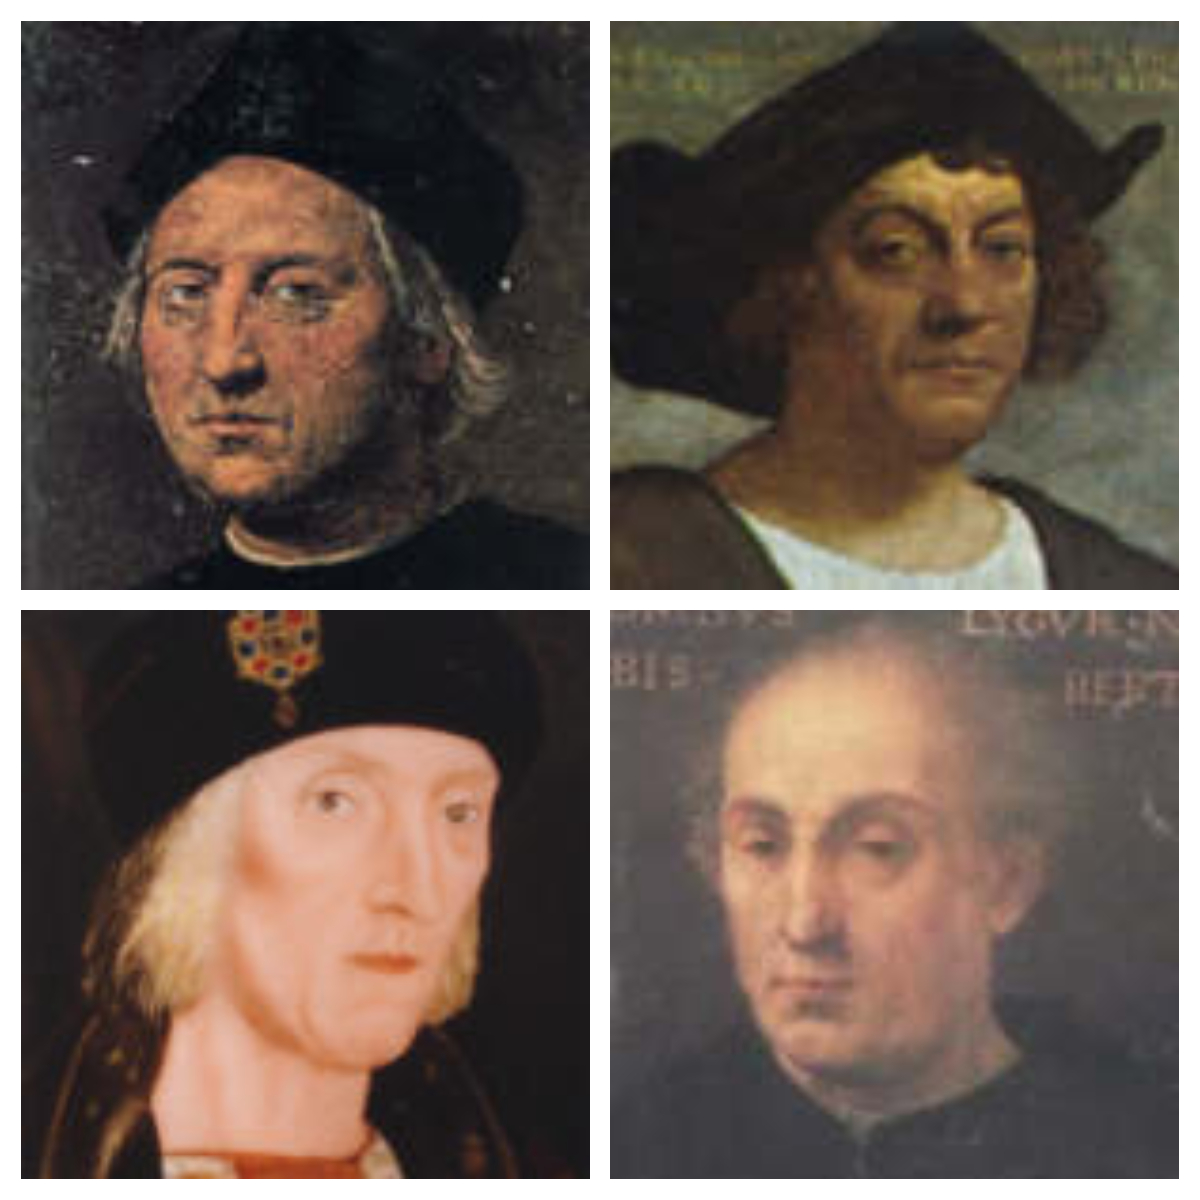 Various portraits of Columbus showing no resemblance to each other, via  vanderkrogt.net